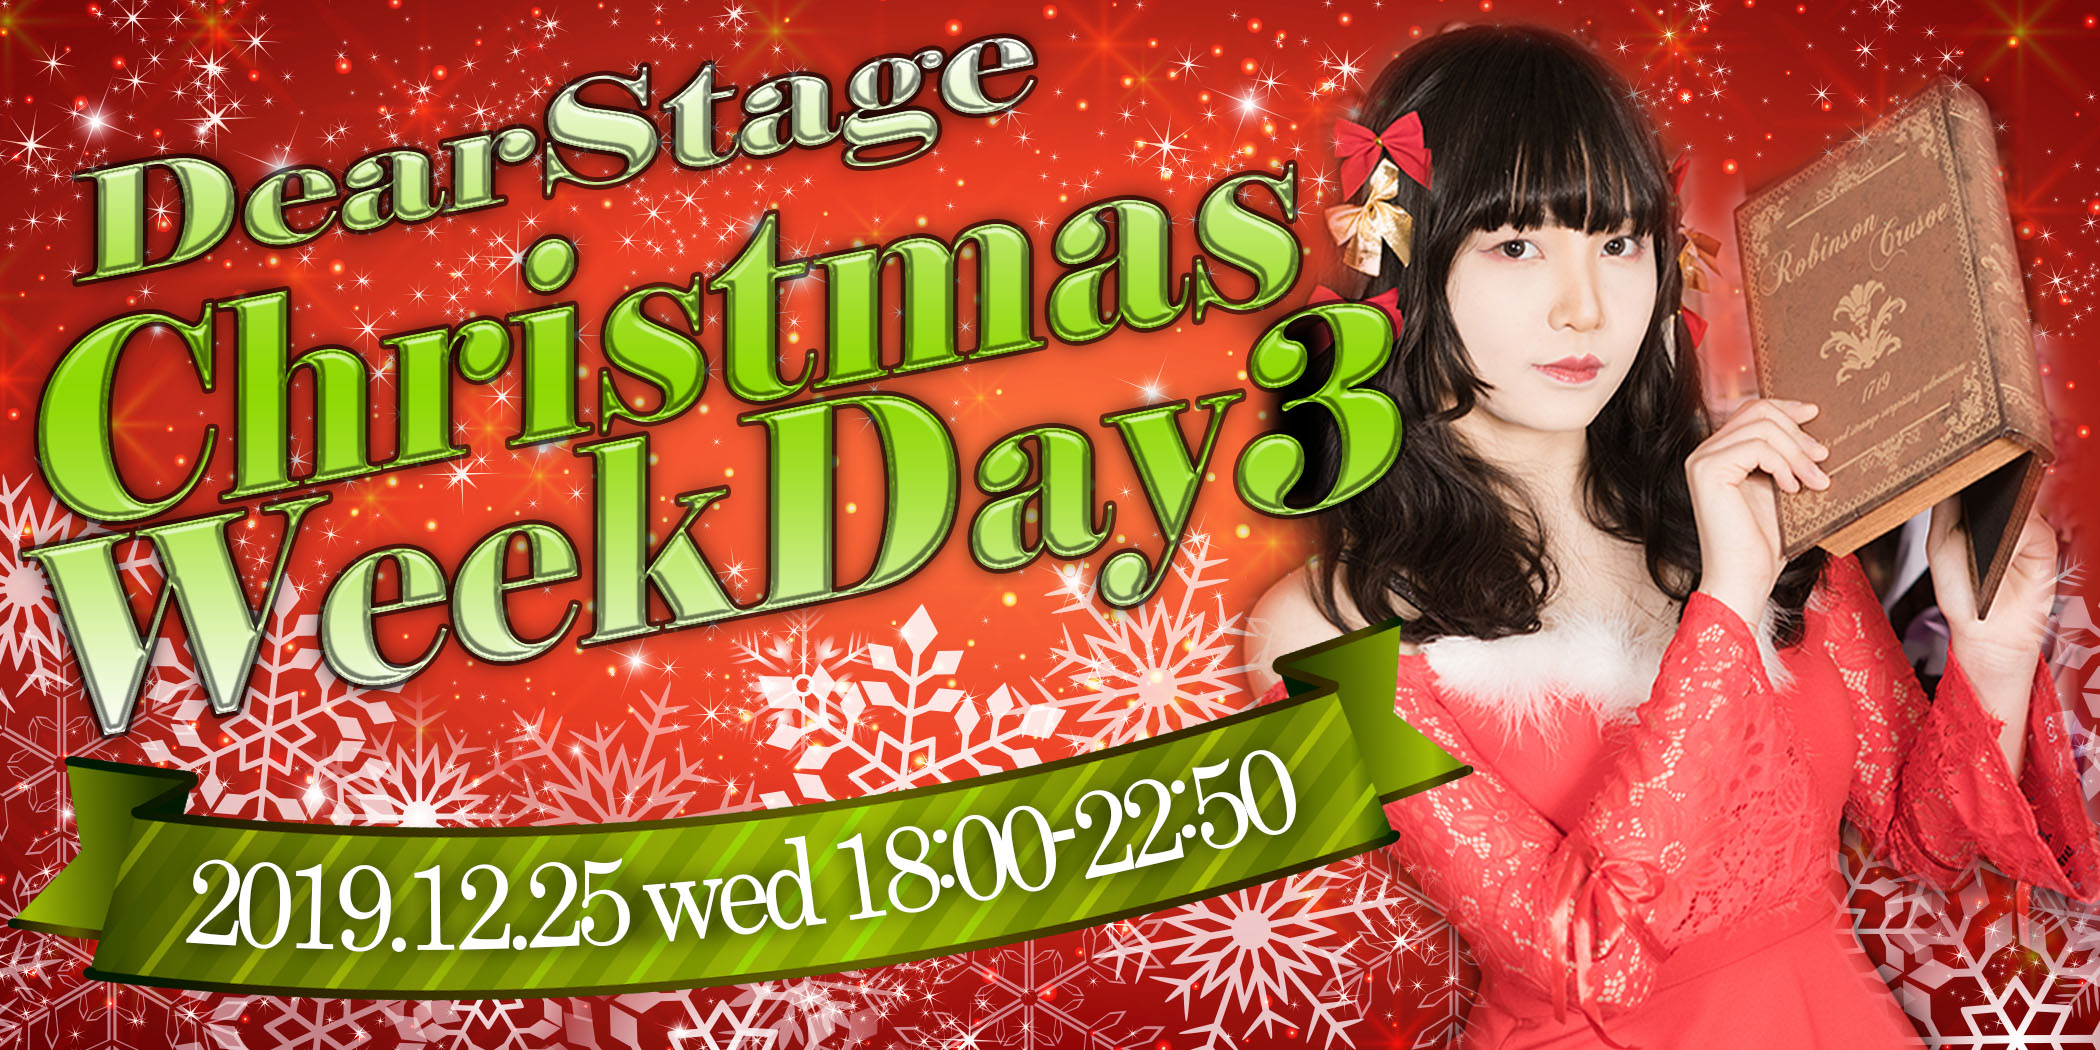 DearStage Christmas Week Day3